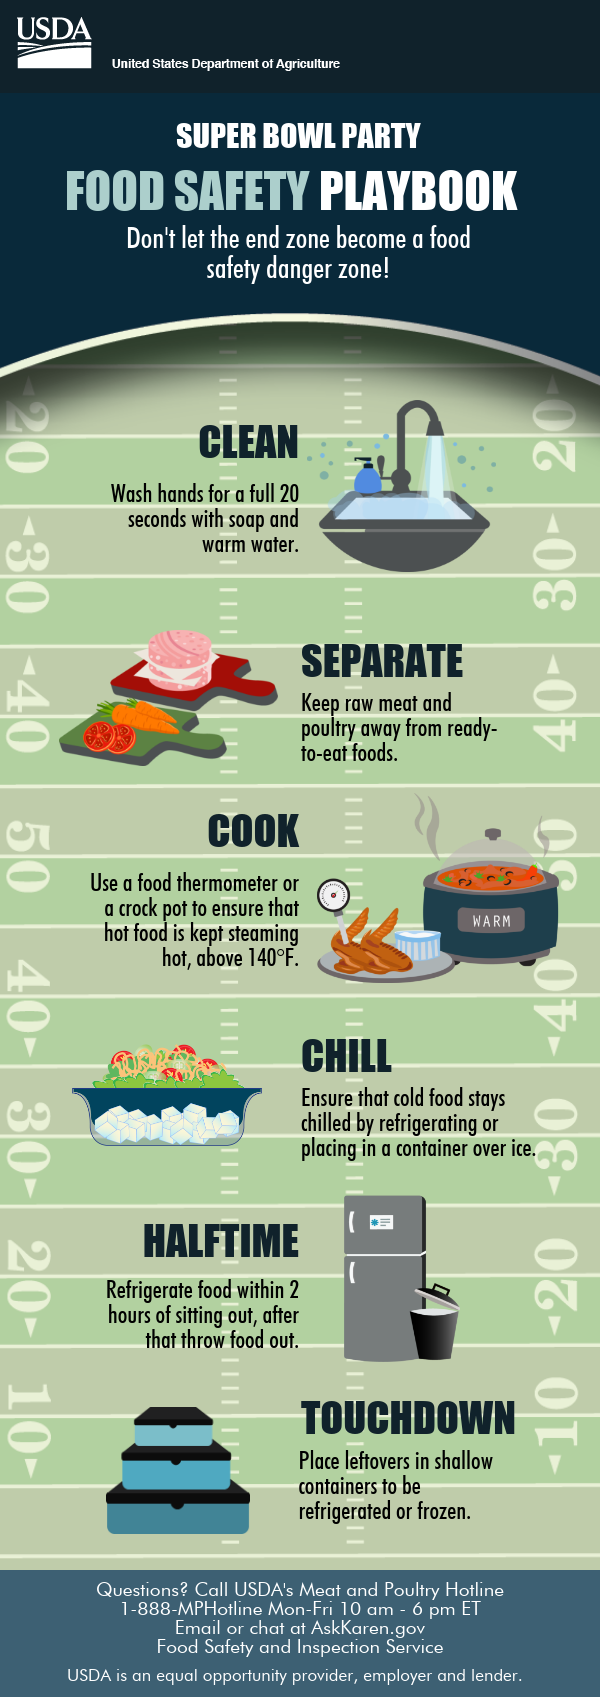 Penalty Free Food Safety Super Bowl Party